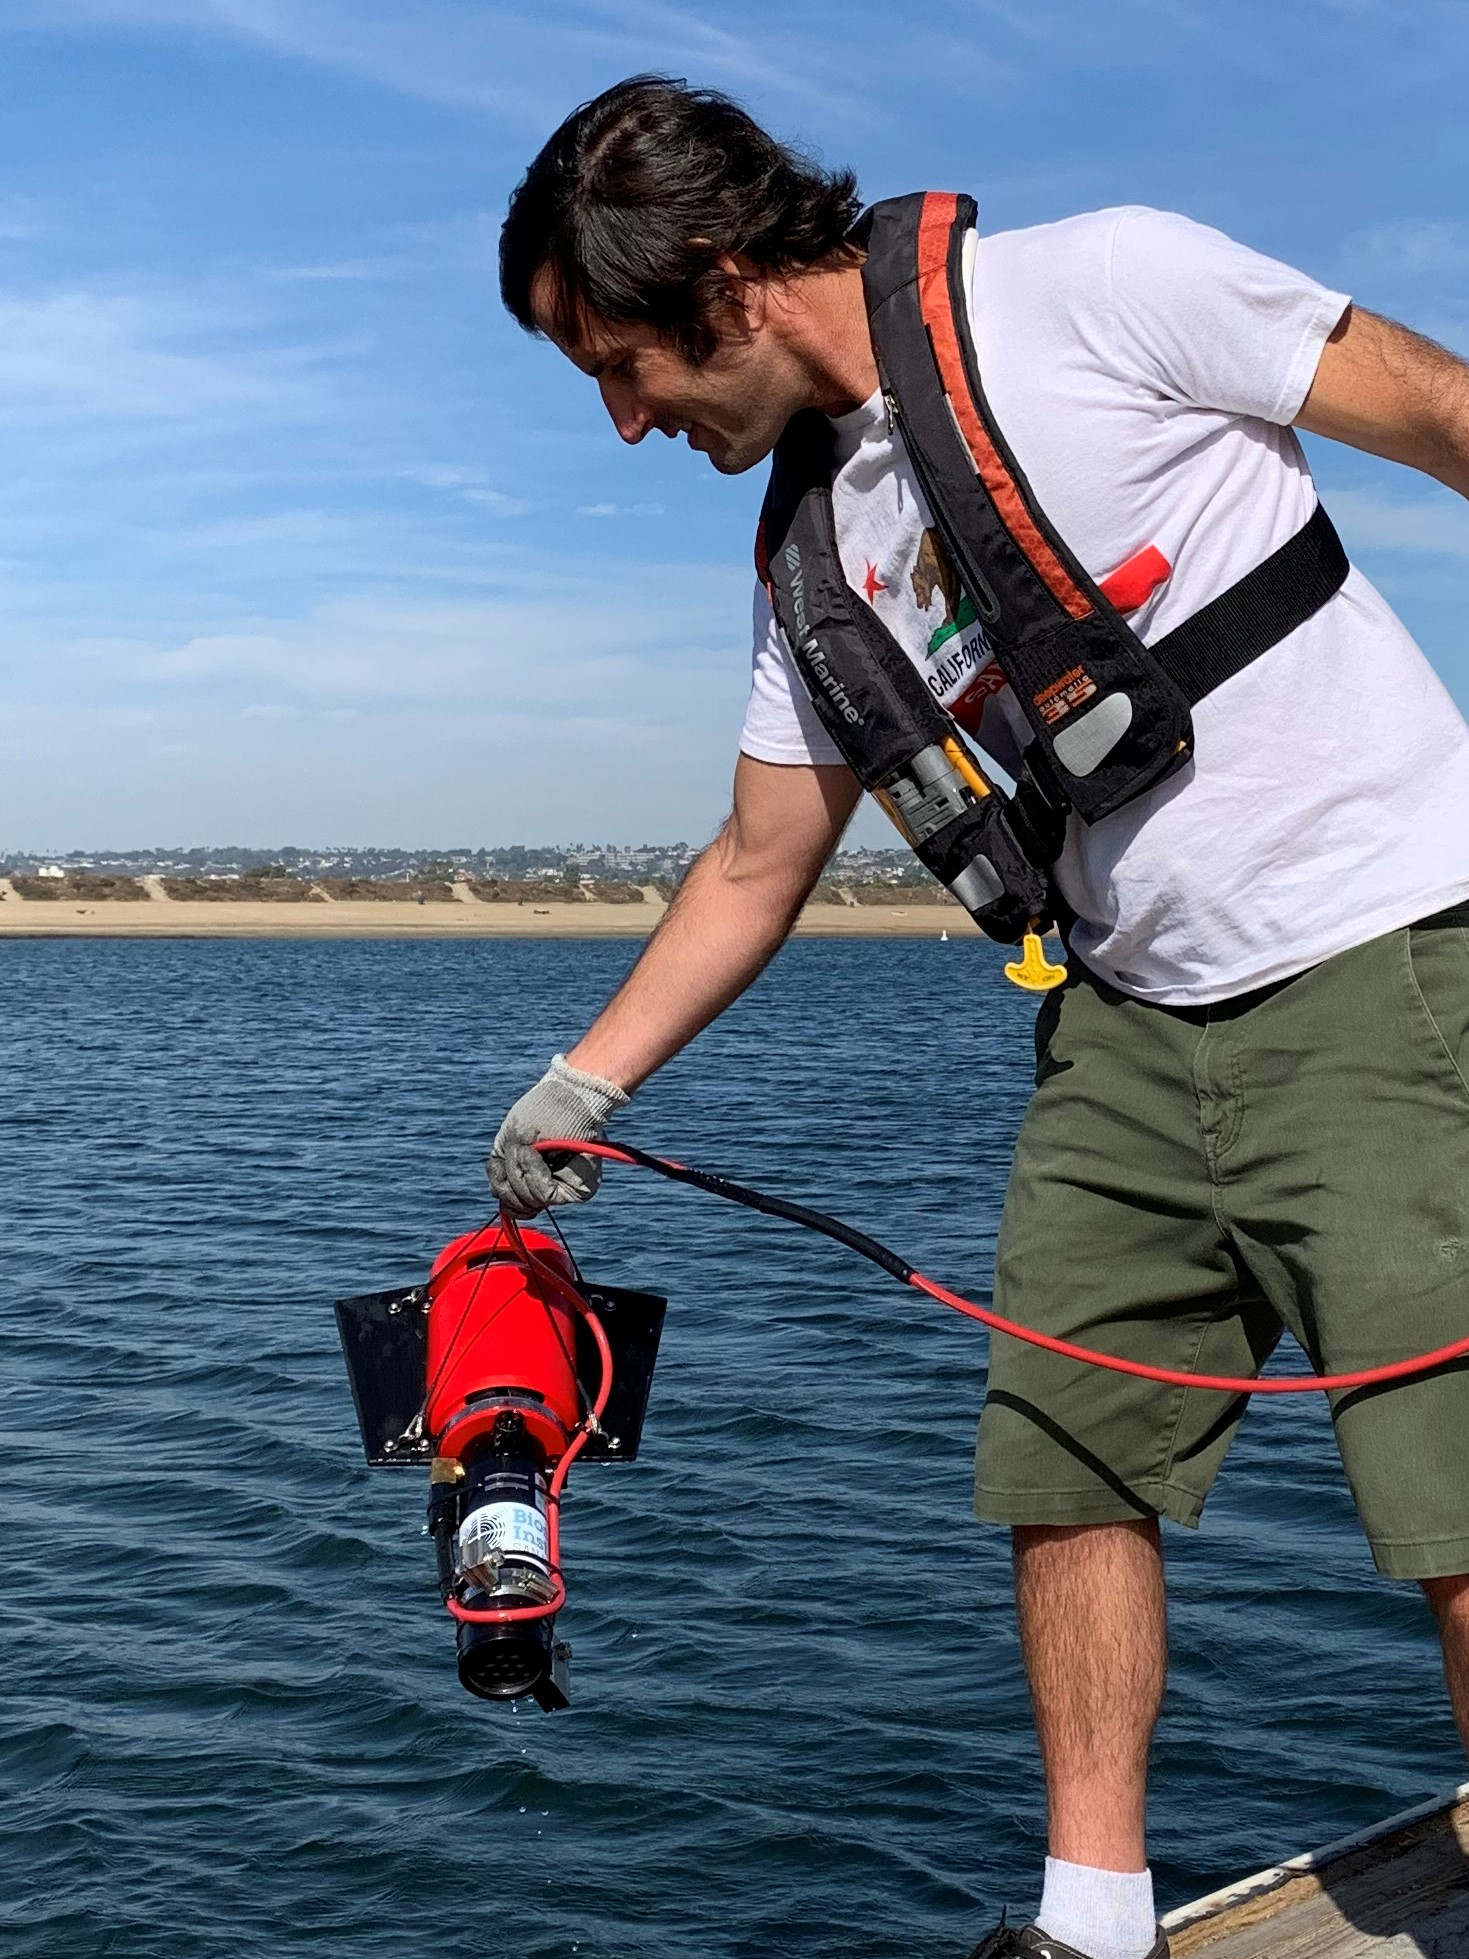 XRL being deployed in Mission Bay, CA